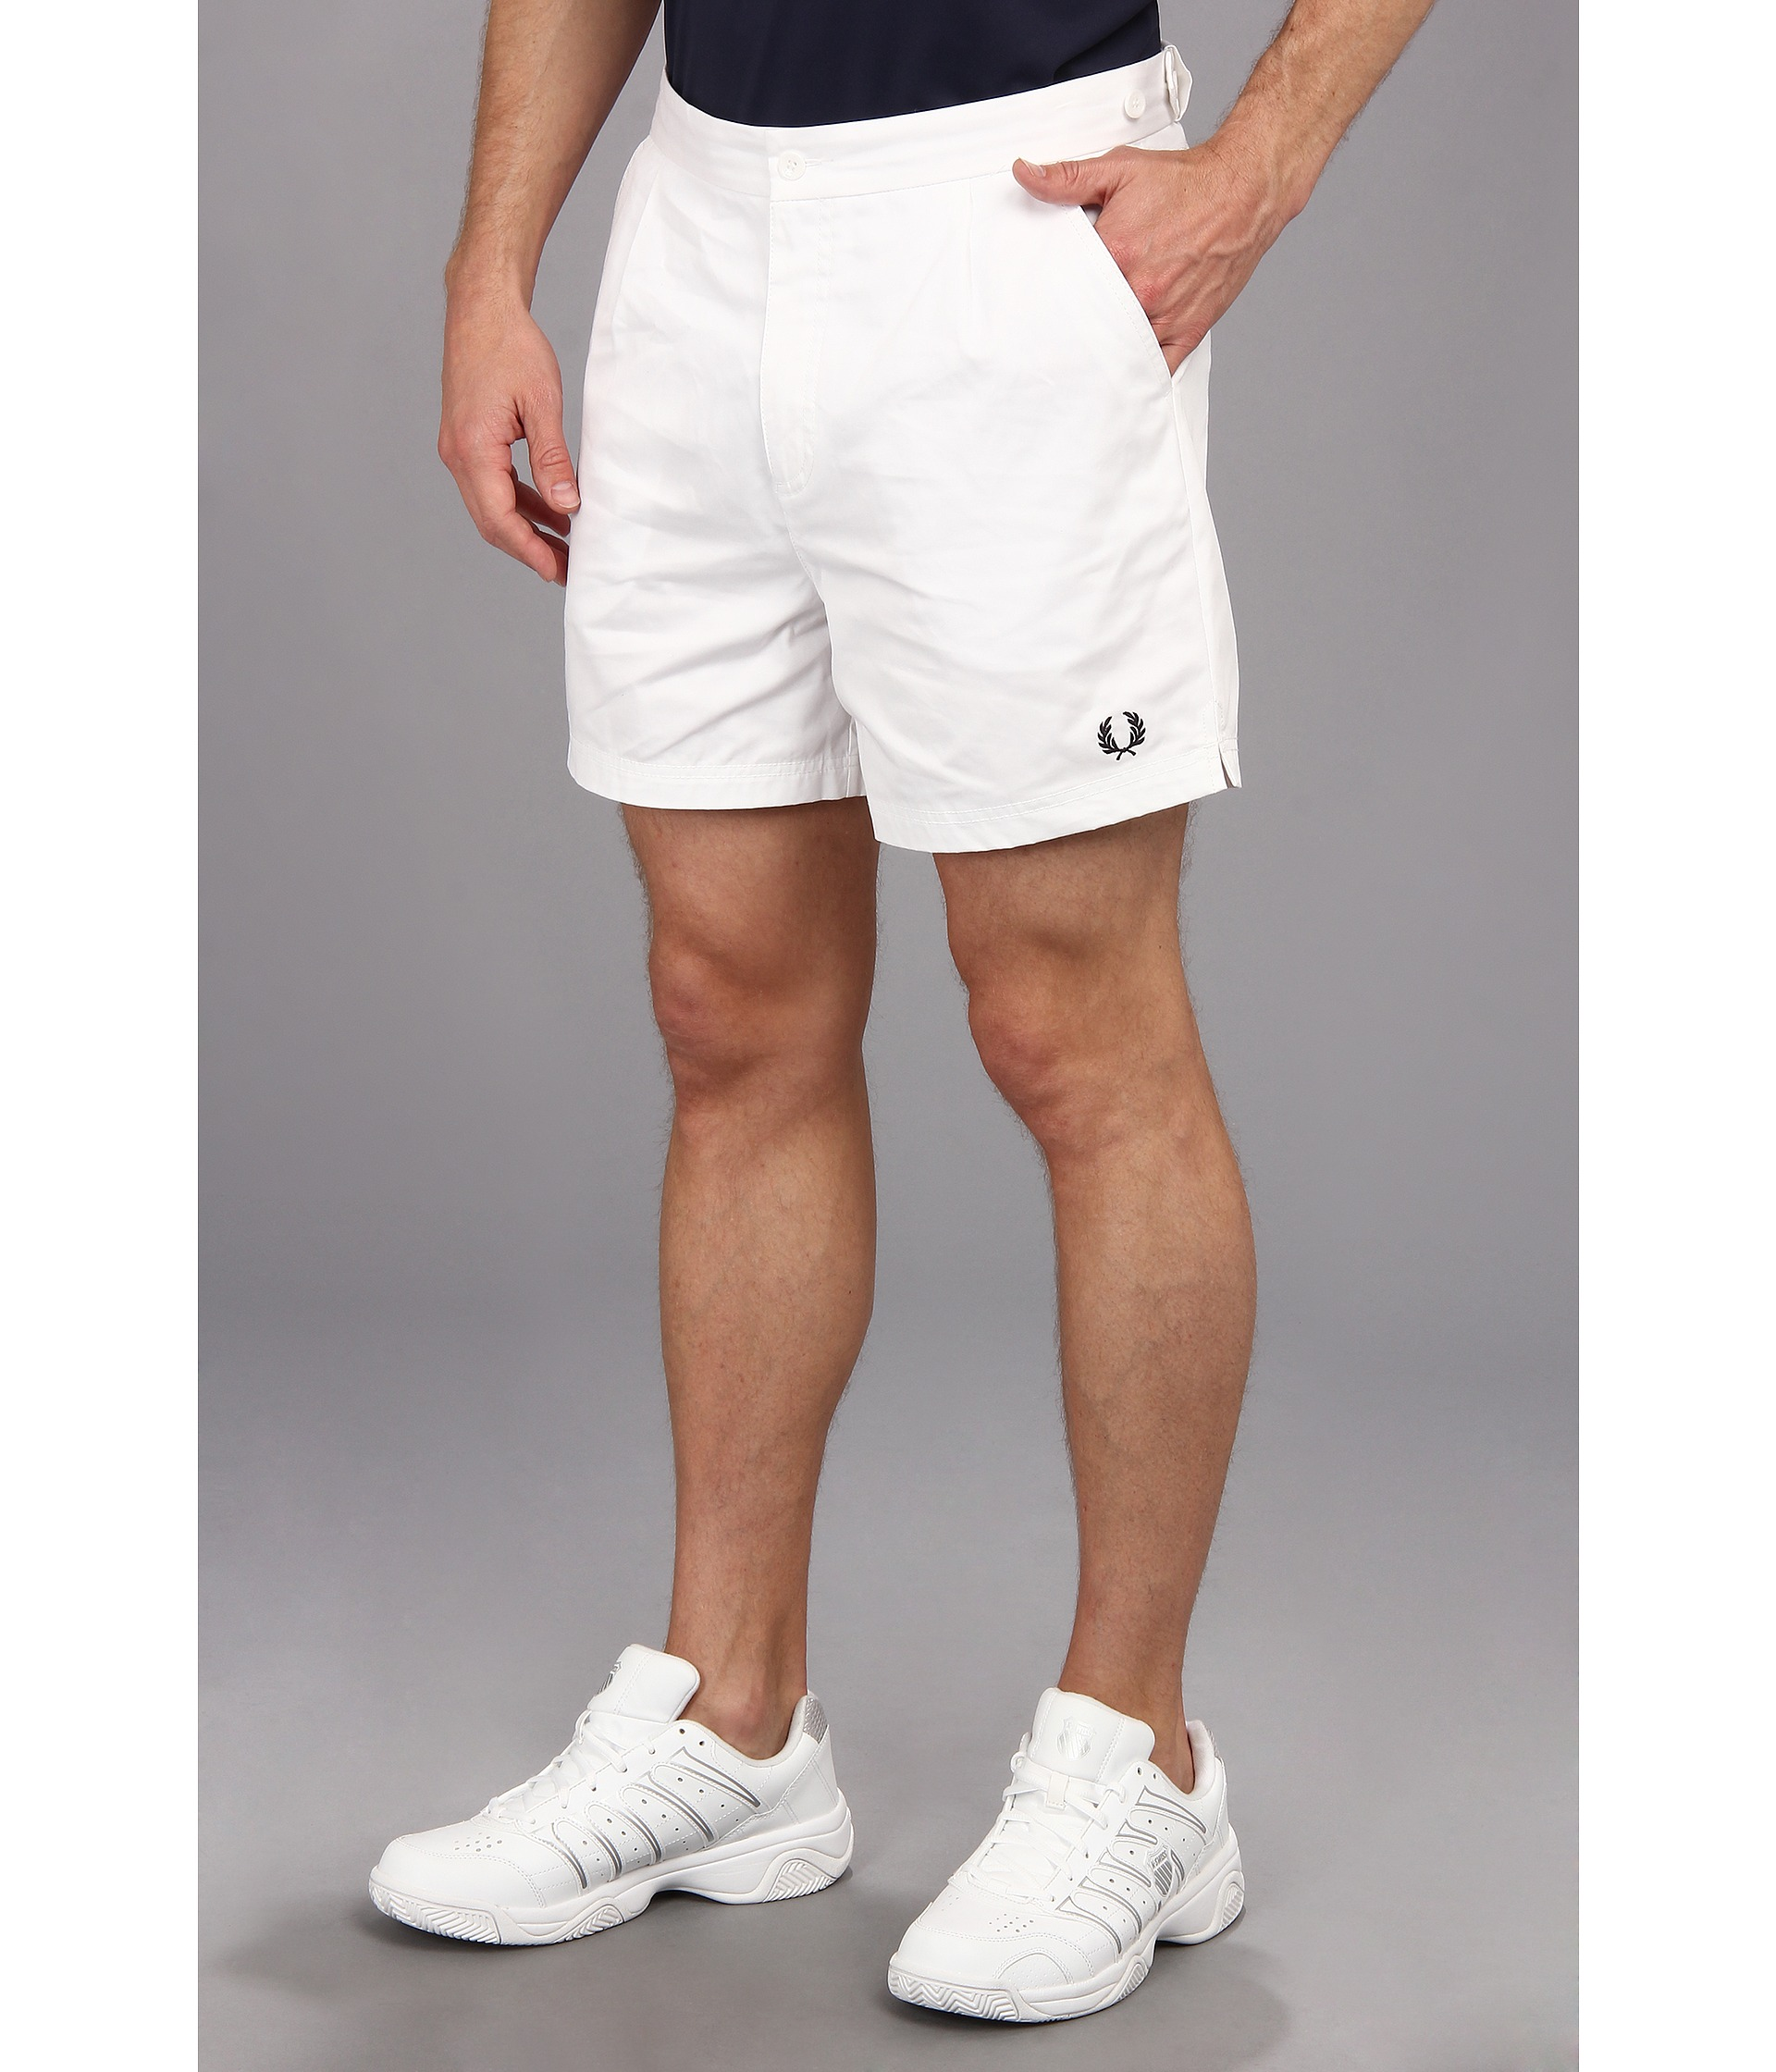 Fred Perry Tailored Tennis Shorts White | Shipped Free at ...